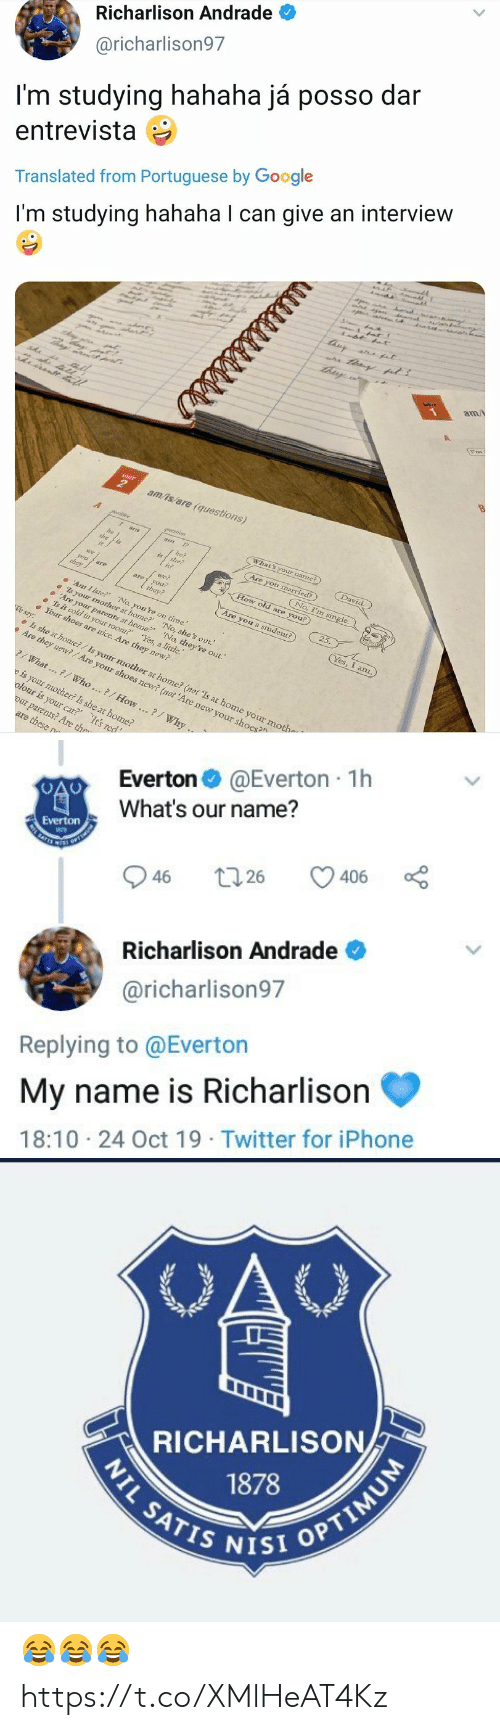 """my name is: Richarlison Andrade  @richarlison97  I'm studying hahaha já posso dar  entrevista  Translated from Portuguese by Google  r  I'm studying hahaha I can give an interview  tisy  a at  am/  UNIT  am/is/are (questions)  A  What's your namme?)  am  David.  he?  she?  Are you married?)  is  No, I'm single  we  How old are you?  nai  aoyou  they?  they  25.  Are you a student?)  Ar I late? No, you're on time.  s your mother at home? No, she's out.  Are yoar parents at home?' 'No, they're out.""""  Is it cold in your room? Yes, a little.  Your shoes are mice. Are they new?  Yes, I anz.  We say:  Is she at home?/Is your mother at home? (not 'Is at home your mothe  Are they new?/Are your shoes new? (not 'Are new your shoes?  What...7/ Who..?/How..?/Why ..  e is your mother? Is she at home?  olour is your car? It's red  our parents? Are the  are these n  है ह।   @Everton 1h  Everton  What's our name?  Everton  SATES  406  26  46  Richarlison Andrade  @richarlison97  Replying to @Everton  My name is Richarlison  18:10 24 Oct 19 Twitter for iPhone  >   OAC  RICHARLISON  1878  NIL SATIS NISI OPTIMUM 😂😂😂 https://t.co/XMlHeAT4Kz"""